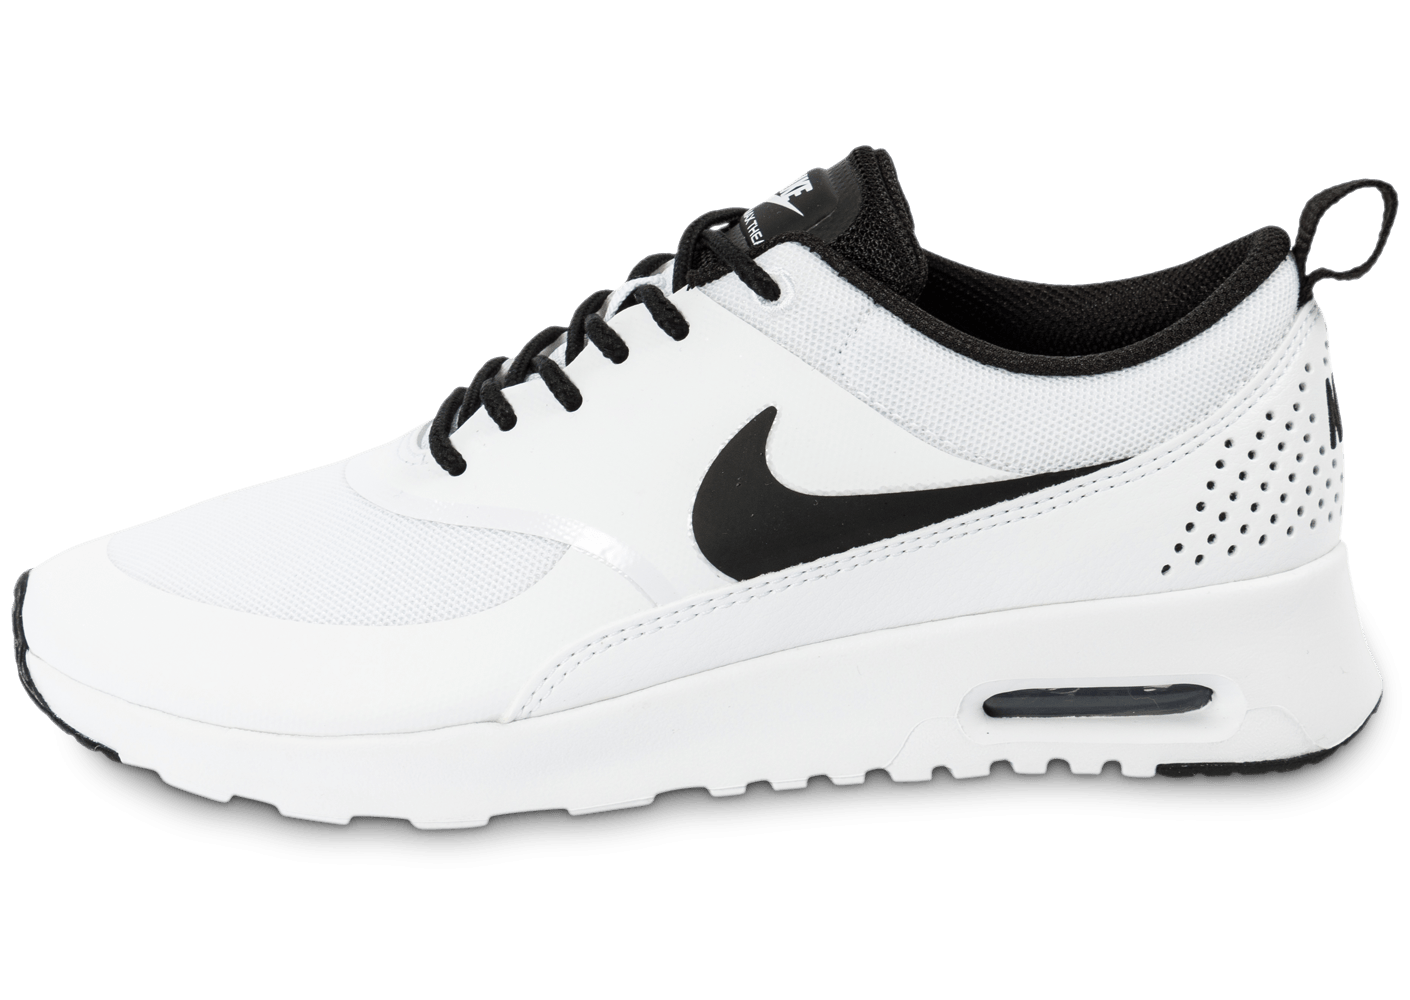 air max thea noir et blanche air max 90 essential blanche. Black Bedroom Furniture Sets. Home Design Ideas